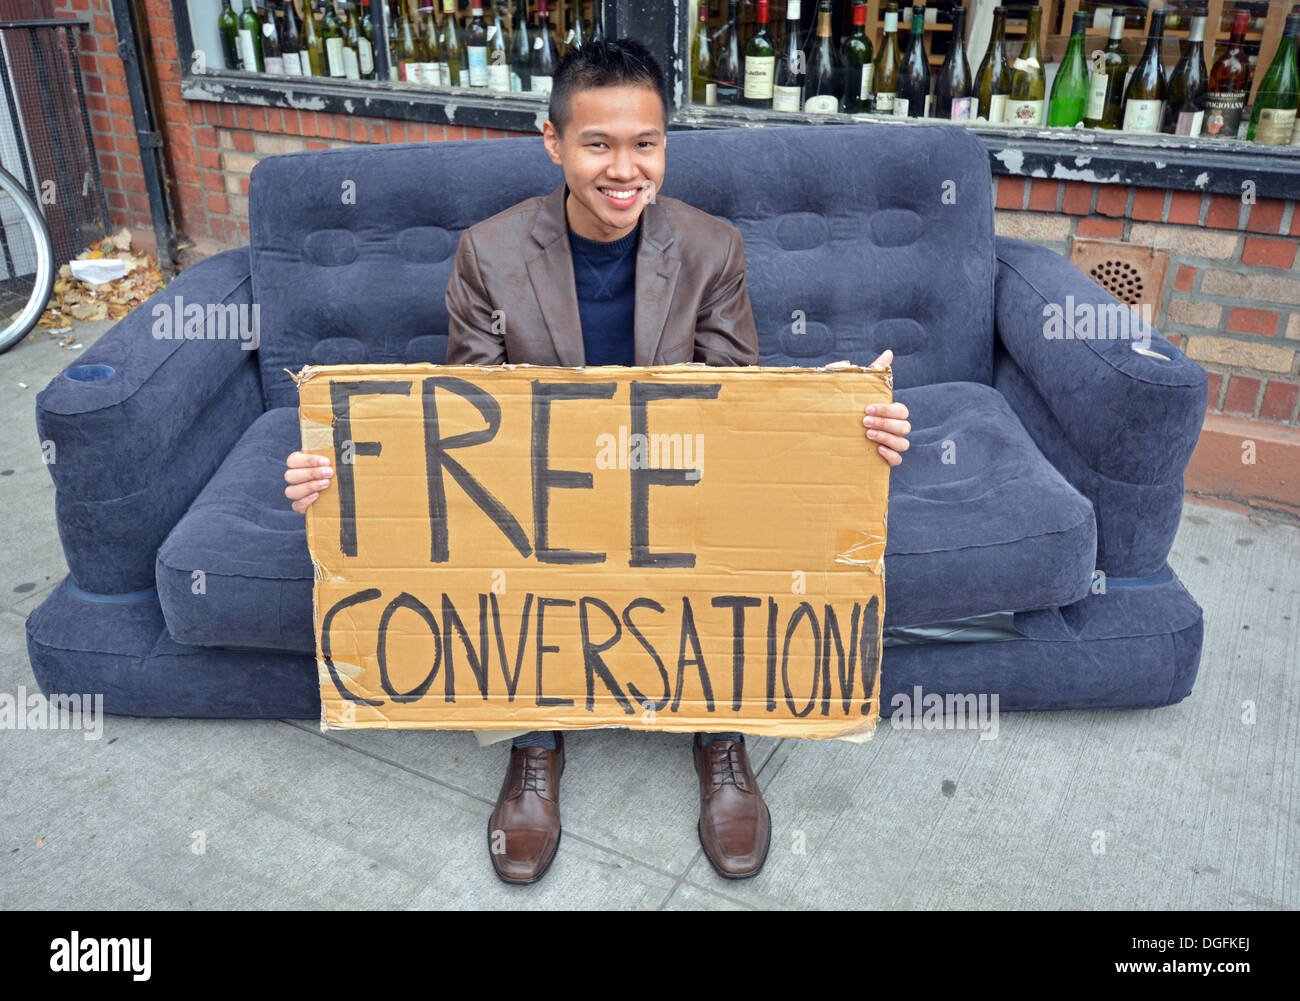 Portrait of Tony, 25, offering free conversation on a sofa in Williamsburg, Brooklyn, New York - Stock Image